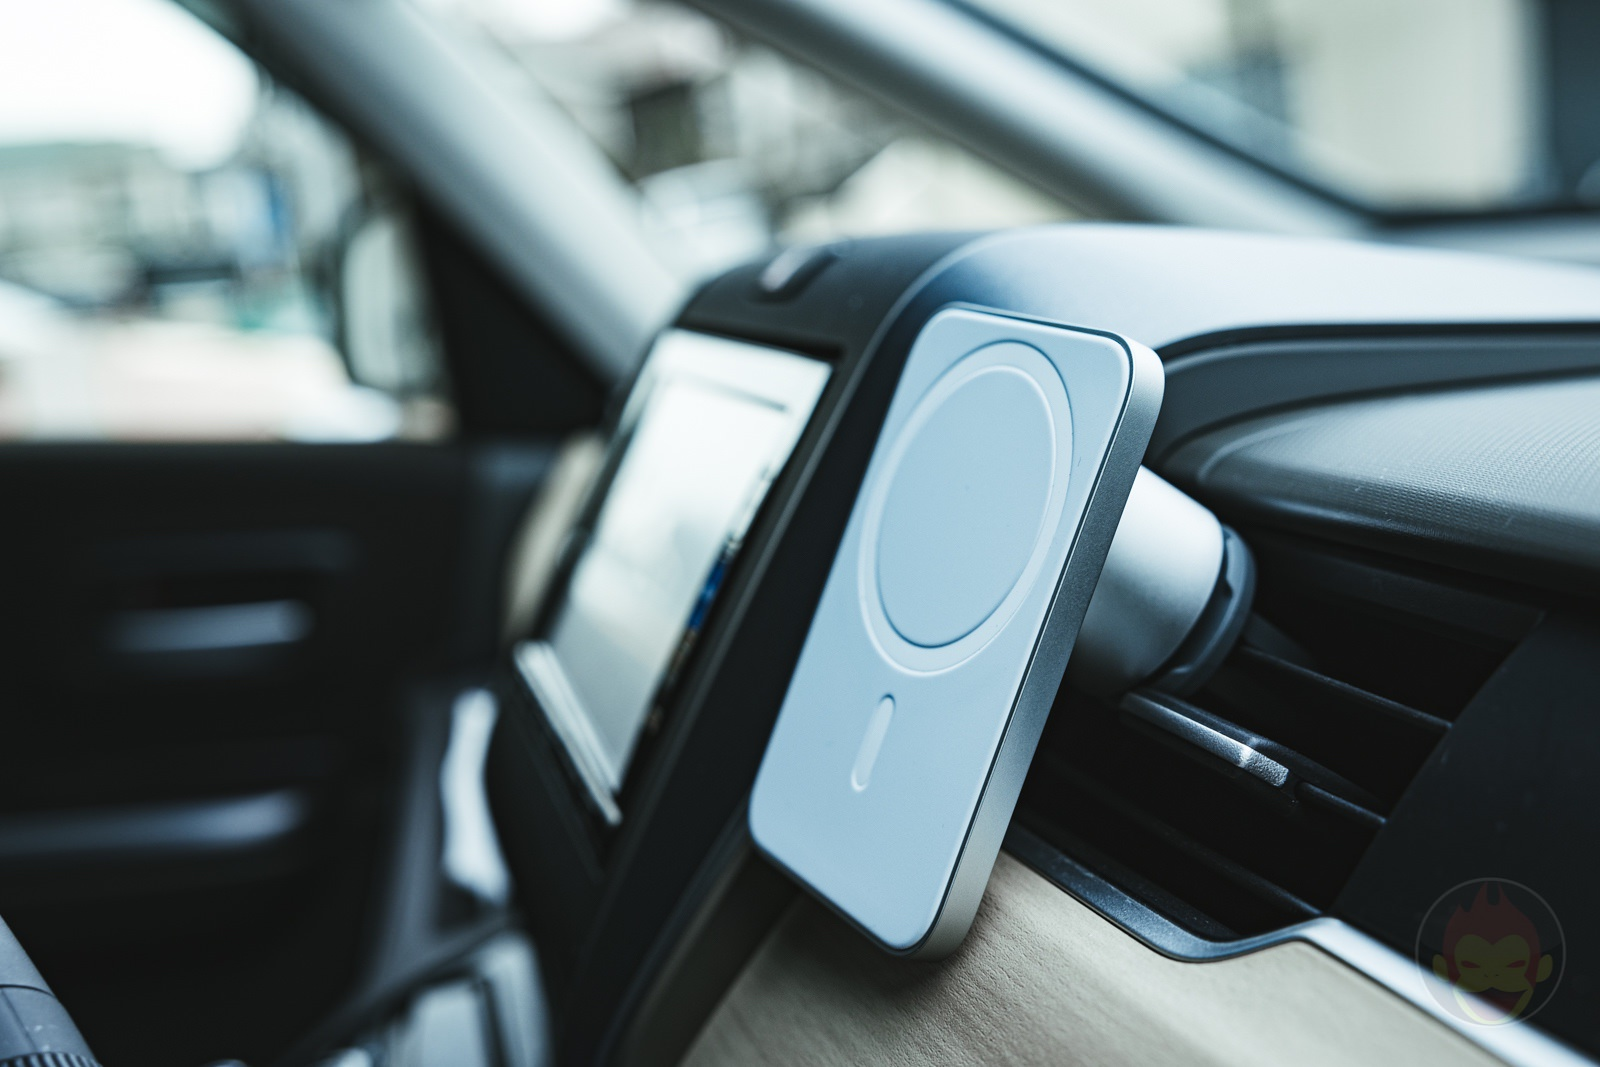 belkin-car-vent-mount-pro-with-magsafe-Review-01.jpg